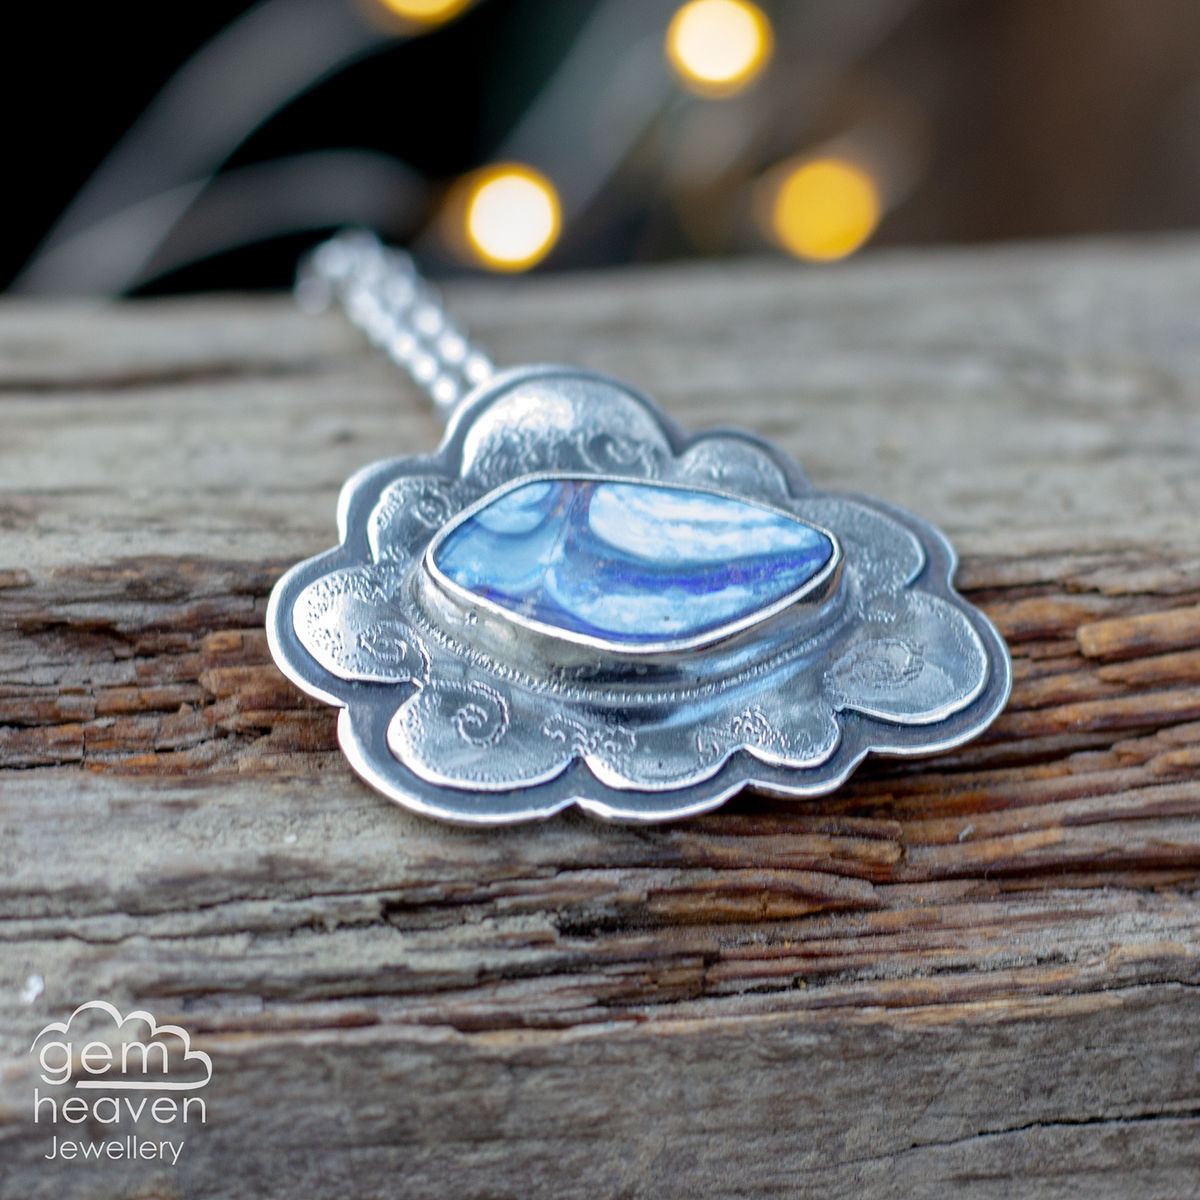 Head in the Clouds - product images  of